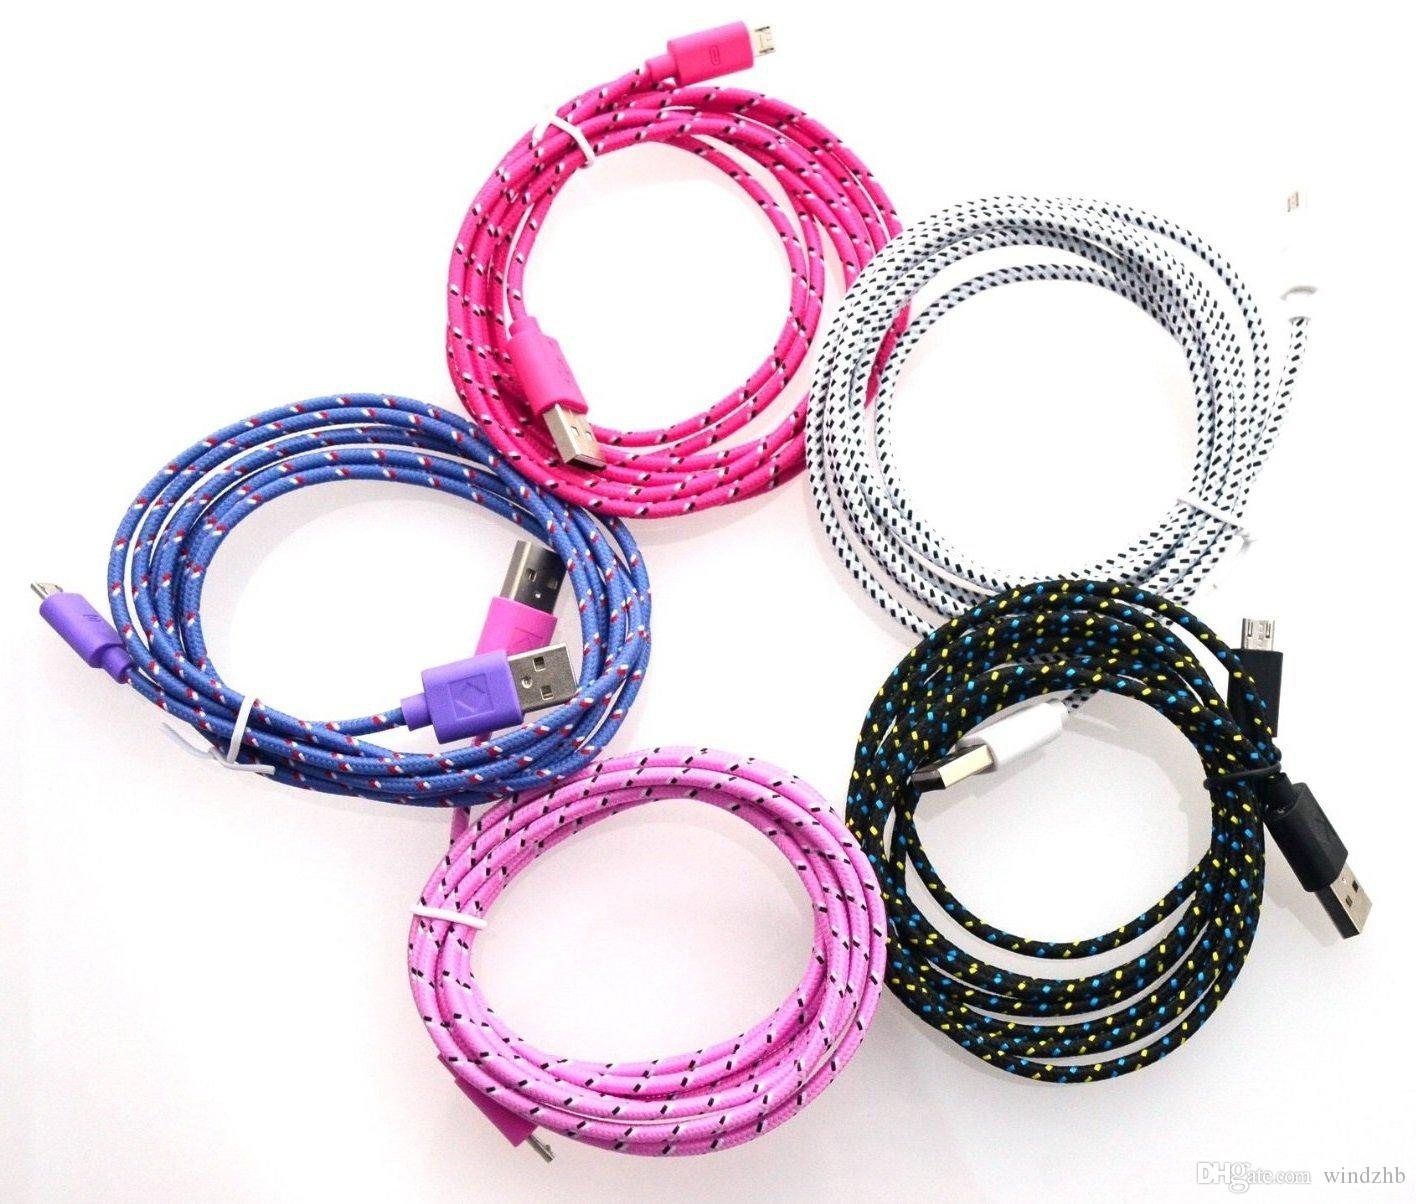 10Ft 3M Extra Long Extension Micro USB Fiber Braided Charger Cable Data Sync Fabric Knit Nylon Chargring Cord Wire Lead For Samsung S3 S4 S5